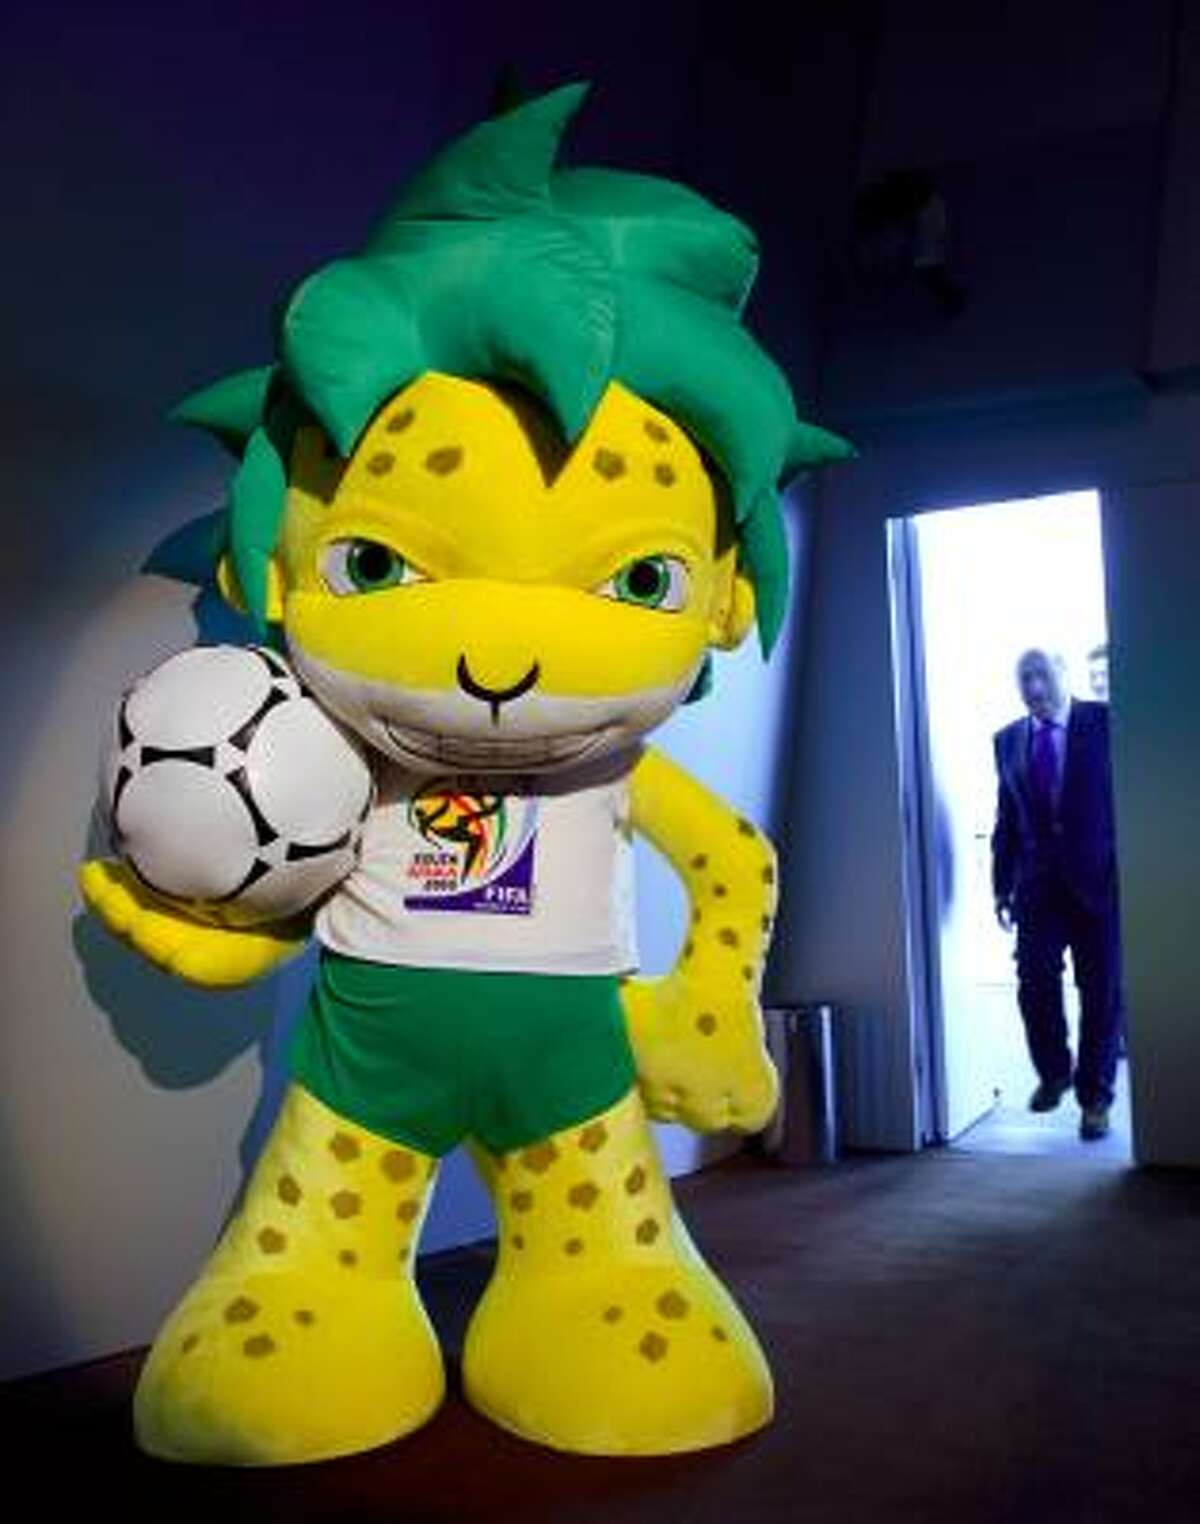 2010 WORLD CUP Zakumi, the FIFA 2010 World Cup mascot, is supposed to be a leopard. Really? He looks more like a lion who lived a little too close to the nuclear power plant.